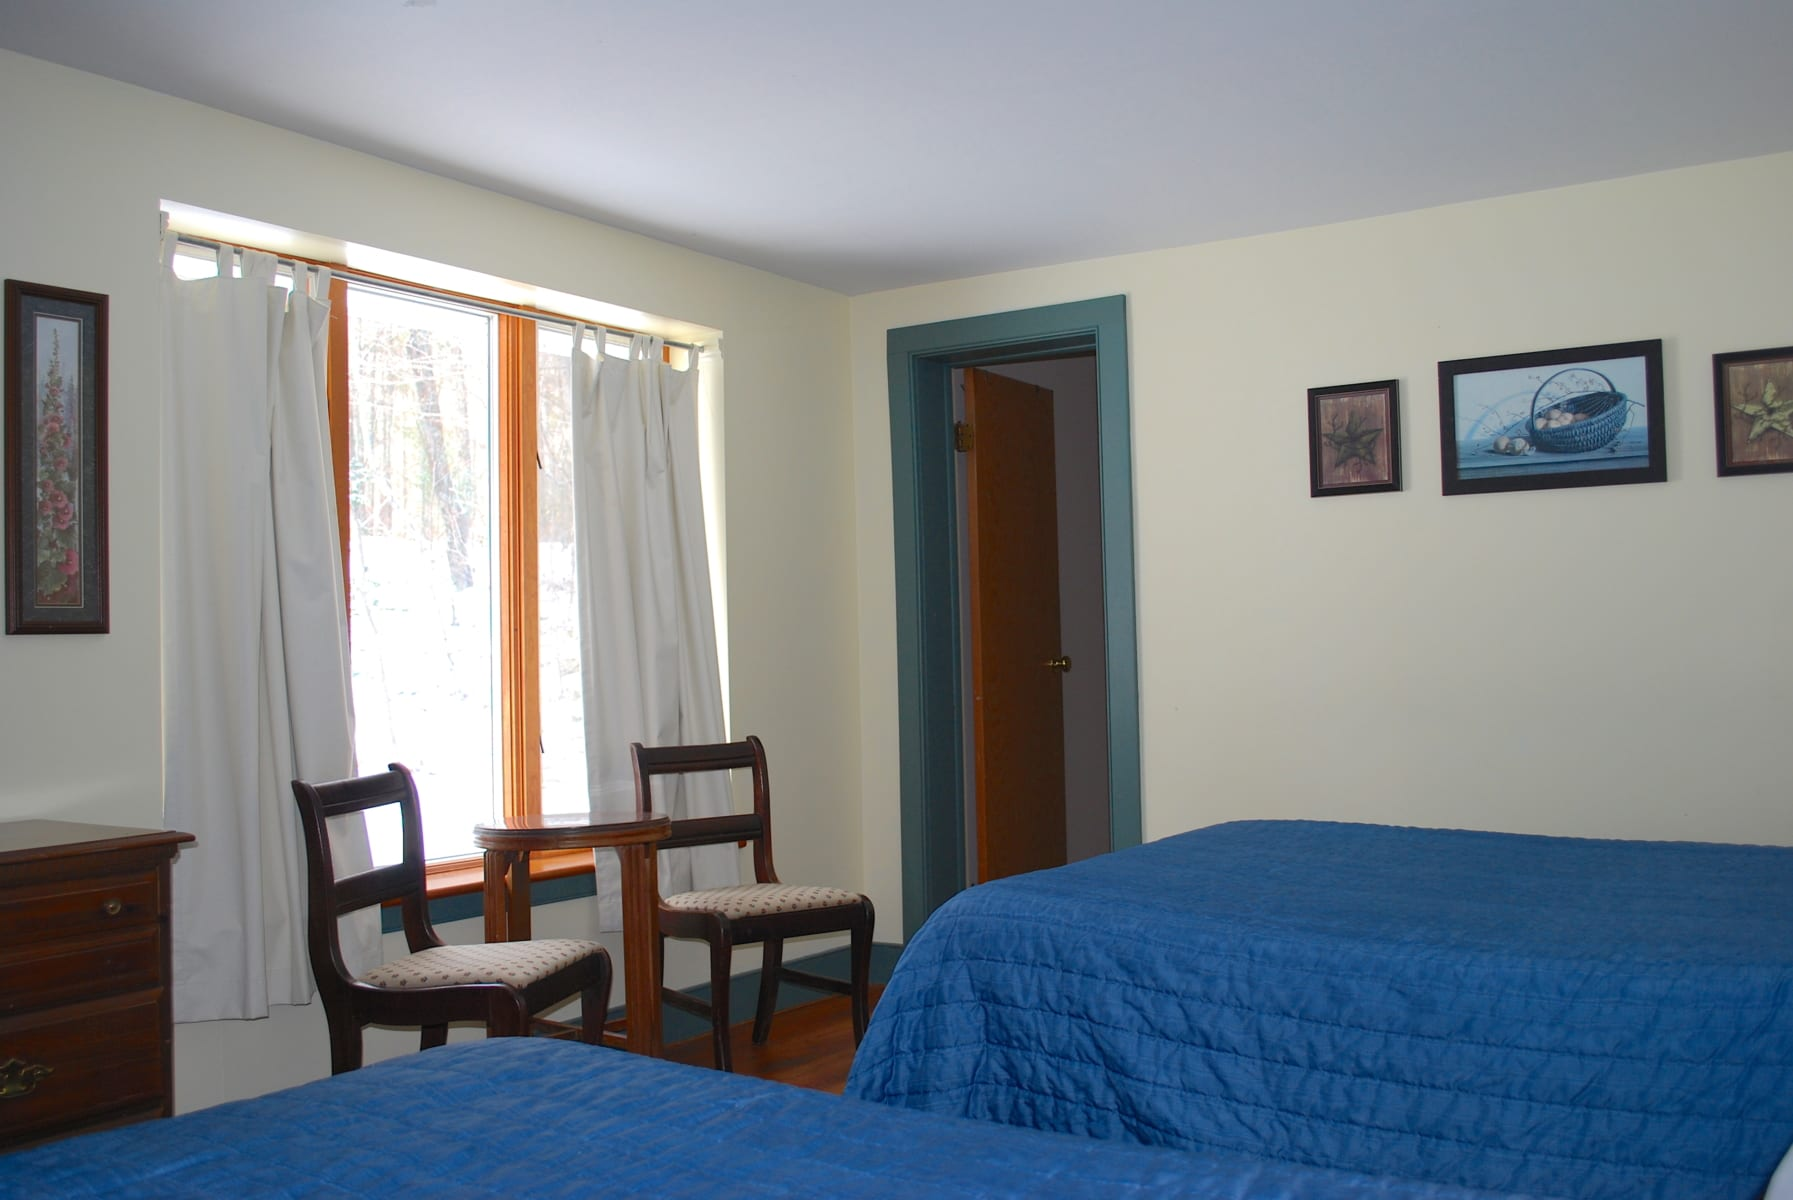 resort bedroom with two double beds and window.